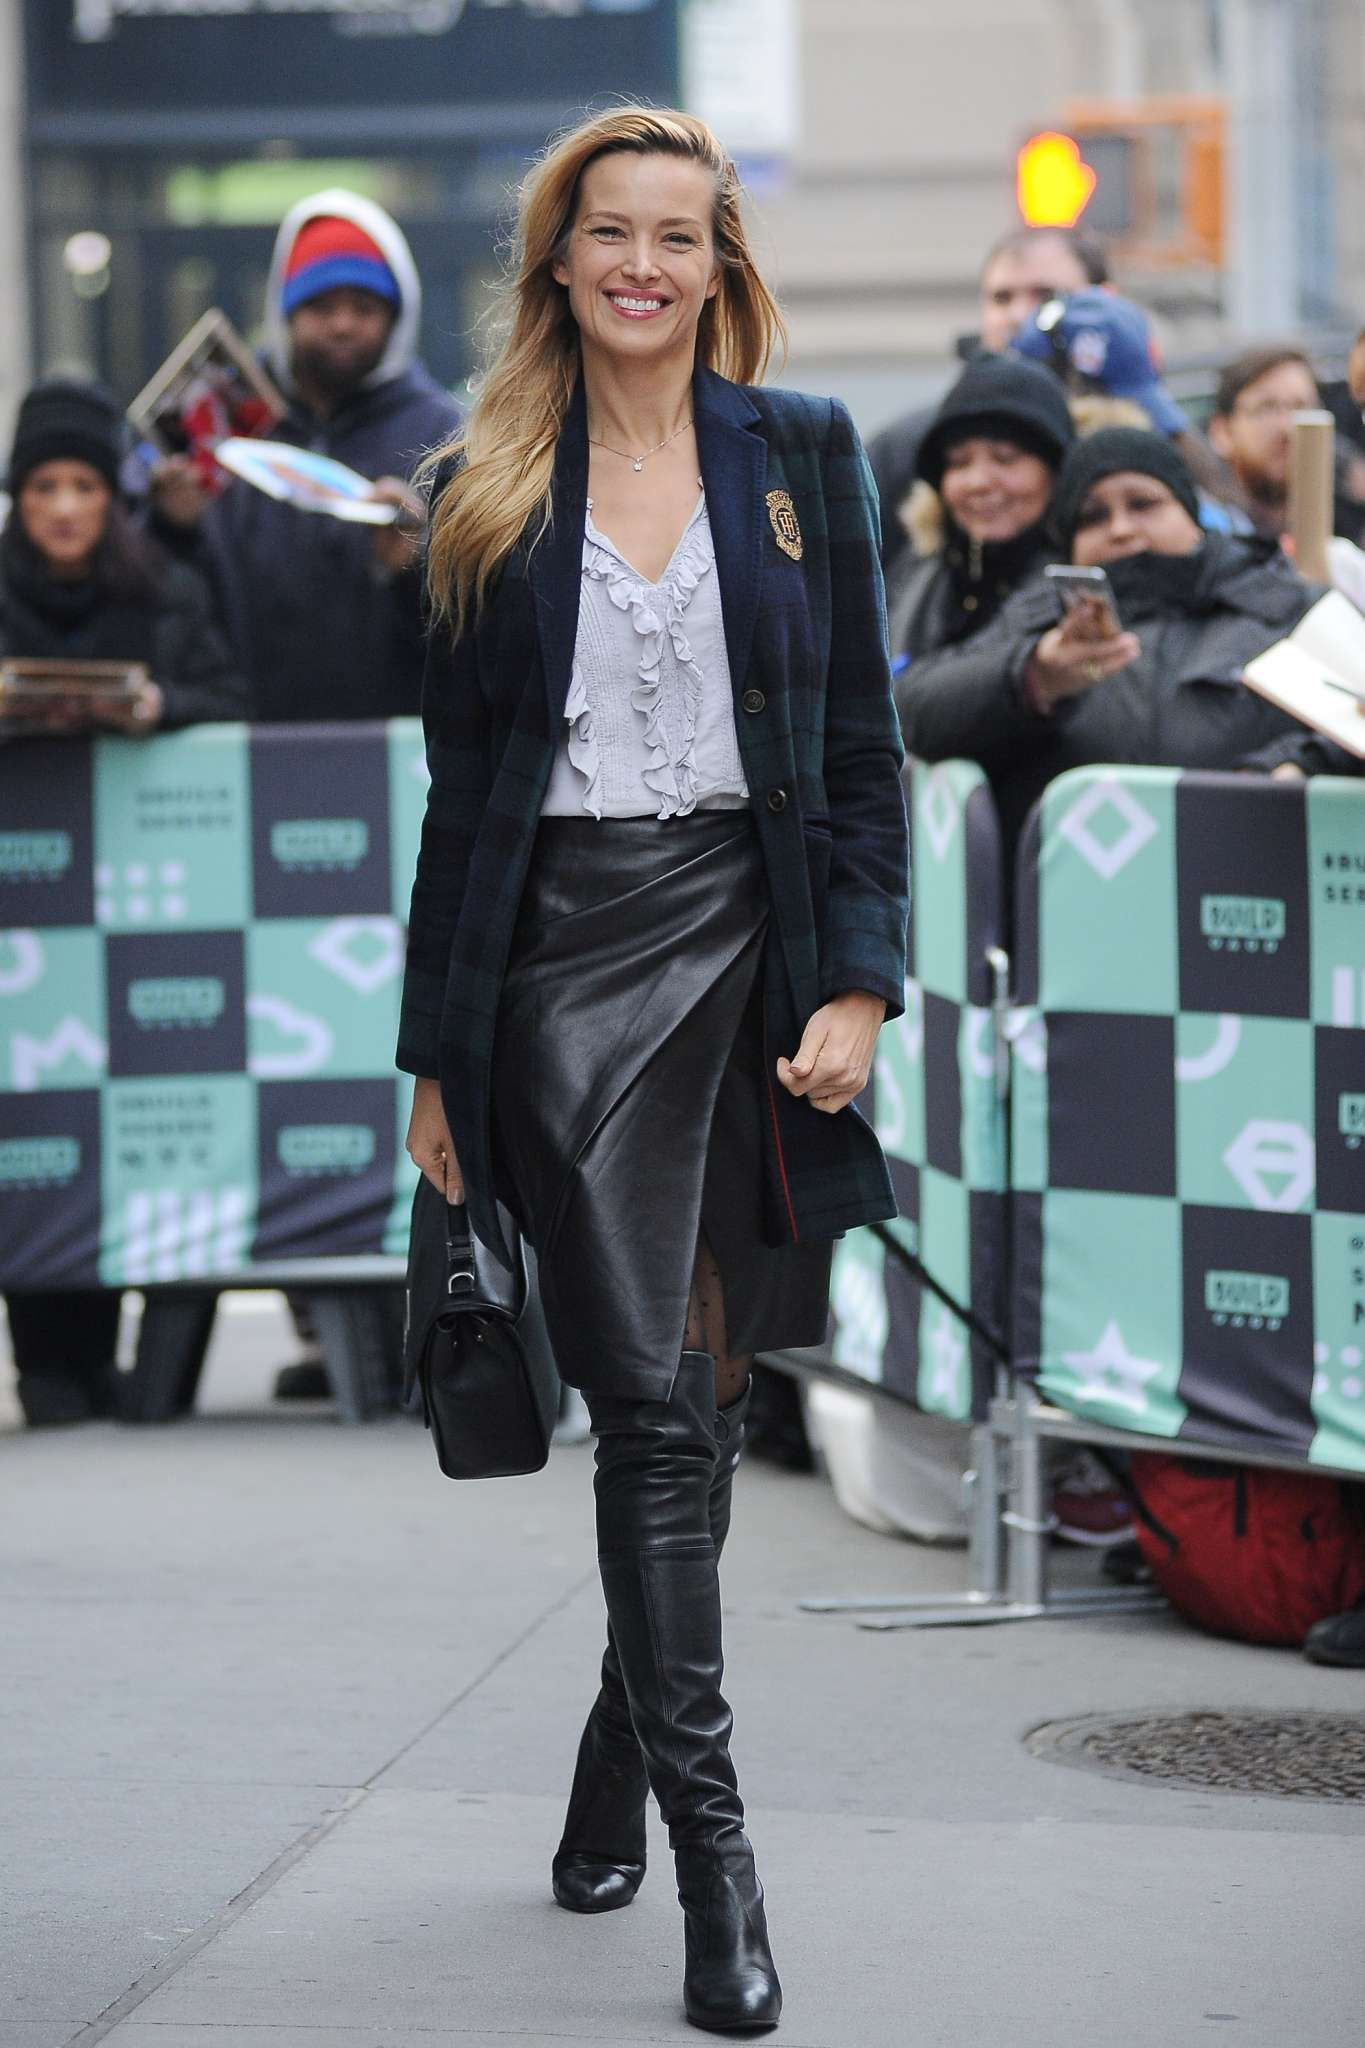 petra nemcova in leather and boots girls in boots 3 pinterest tolle frauen lederrock und frau. Black Bedroom Furniture Sets. Home Design Ideas